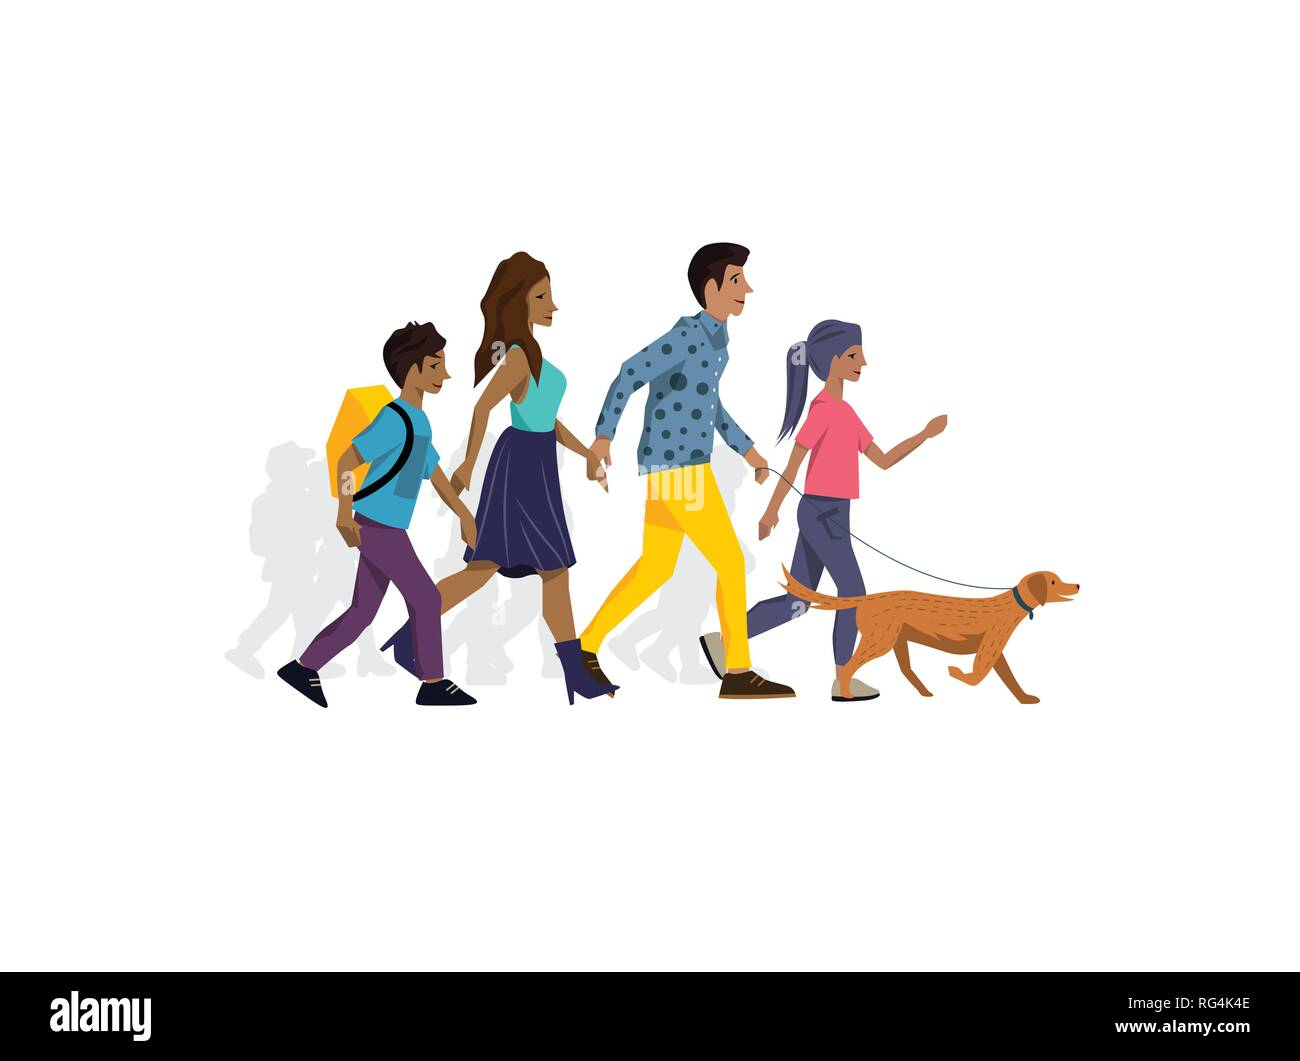 Family members walking the dog in the park and spending time together. Vector illustration. - Stock Vector